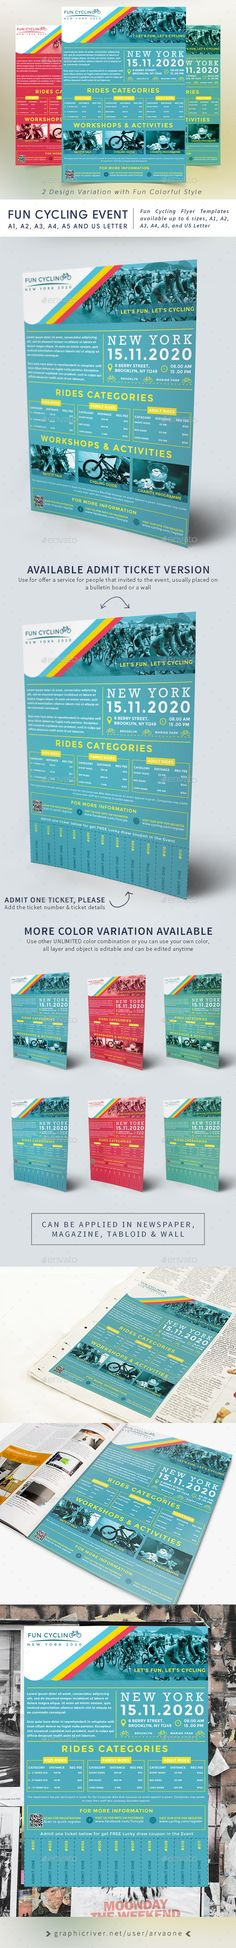 Fun Cycling Event Flyer Design Templates - Sports Events Flyer Design Template PSD. Download here: https://graphicriver.net/item/fun-cycling-event-flyer-templates/19358811?ref=yinkira